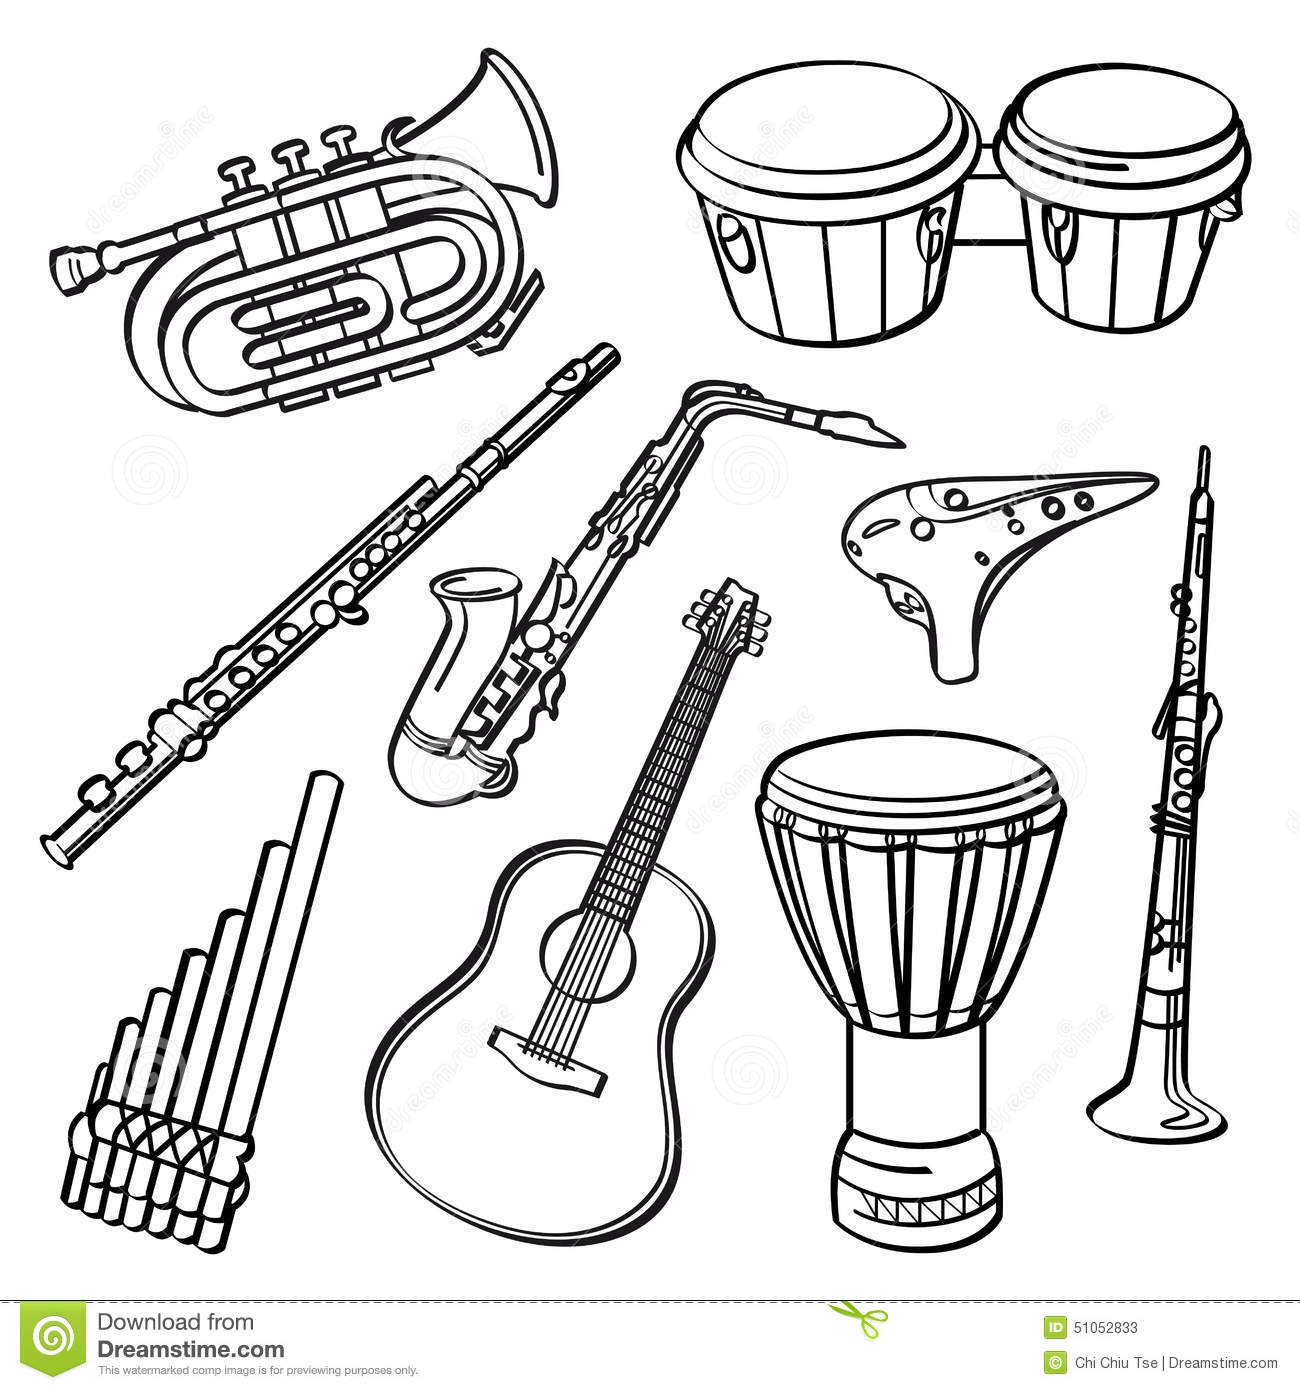 Kids Under 7: Musical-instruments Coloring Pages Free printable pictures of musical instruments